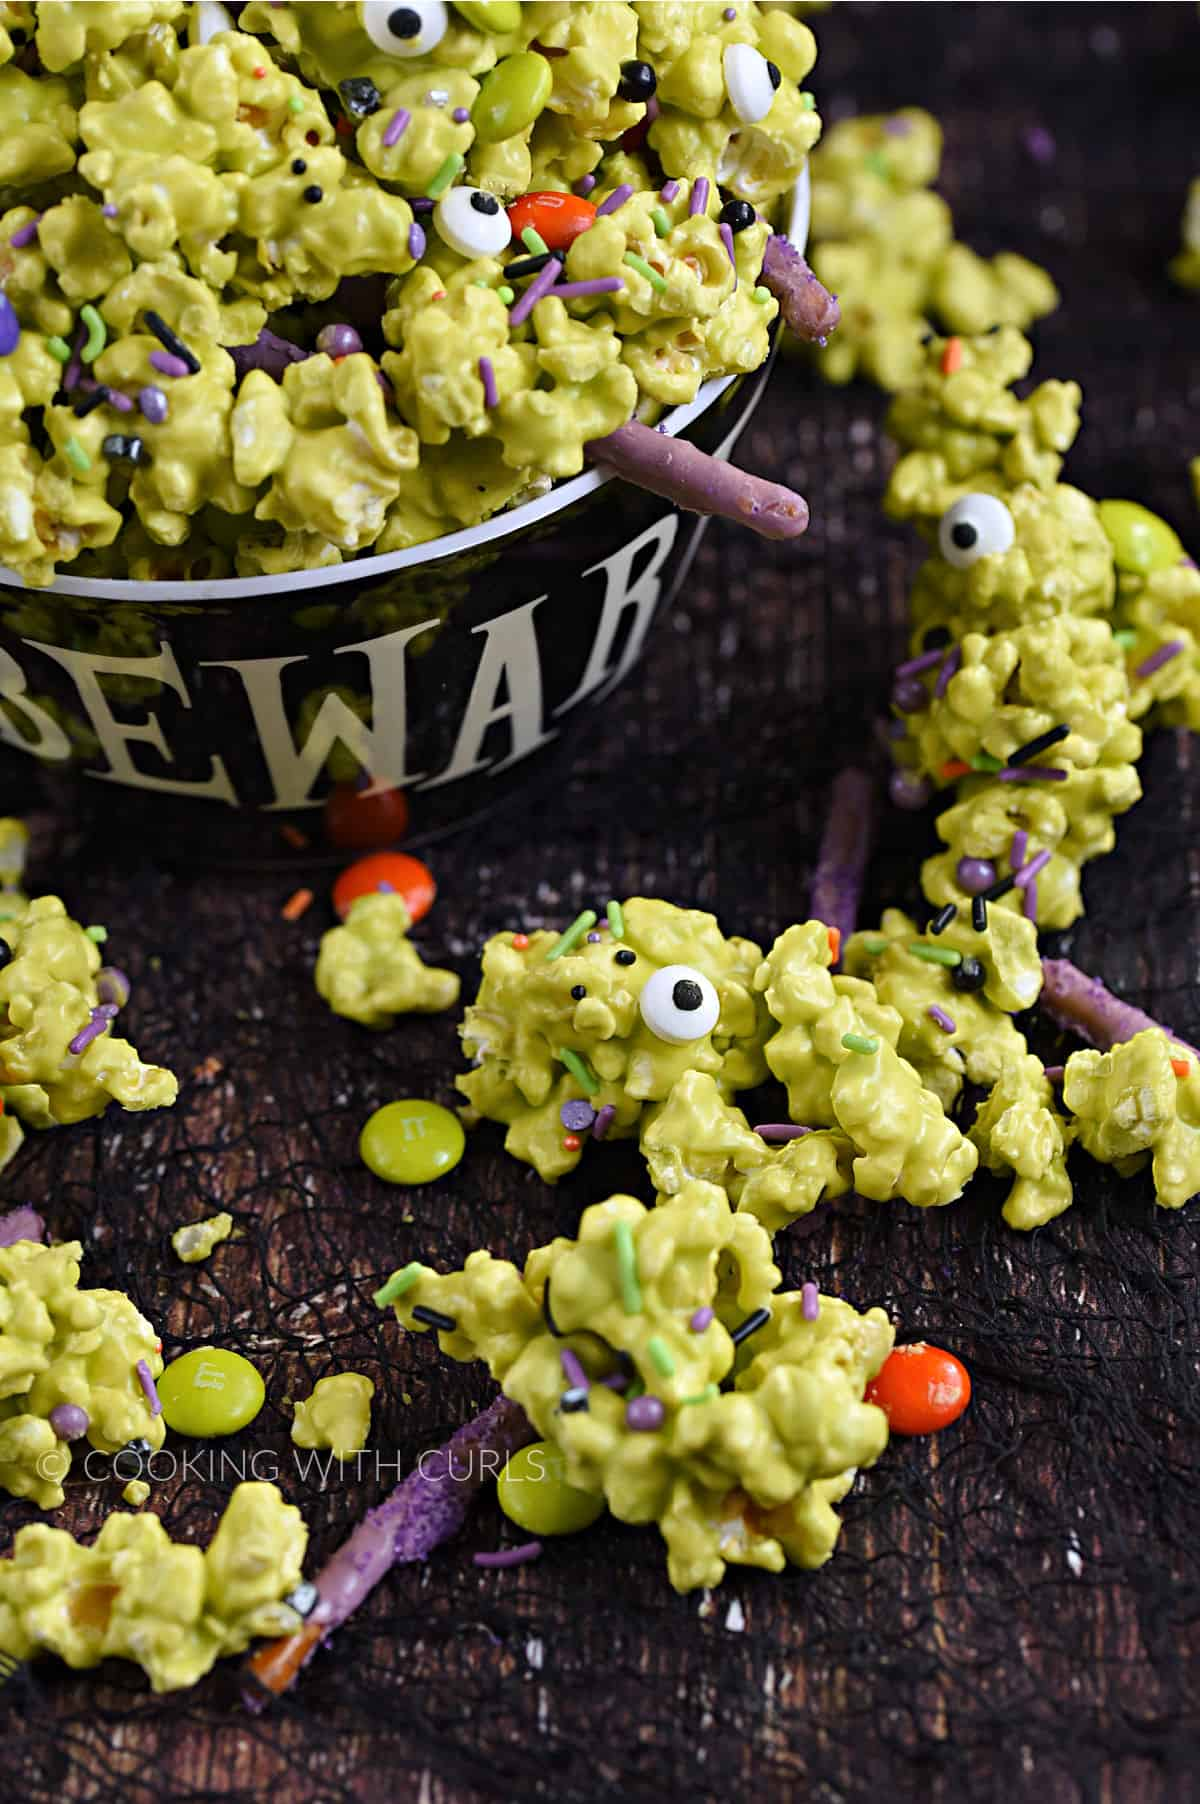 Green candy coated popcorn with candy eyes, sprinkles, purple pretzel sticks, and candy coated chocolates overflowing a bowl onto a wood surface.